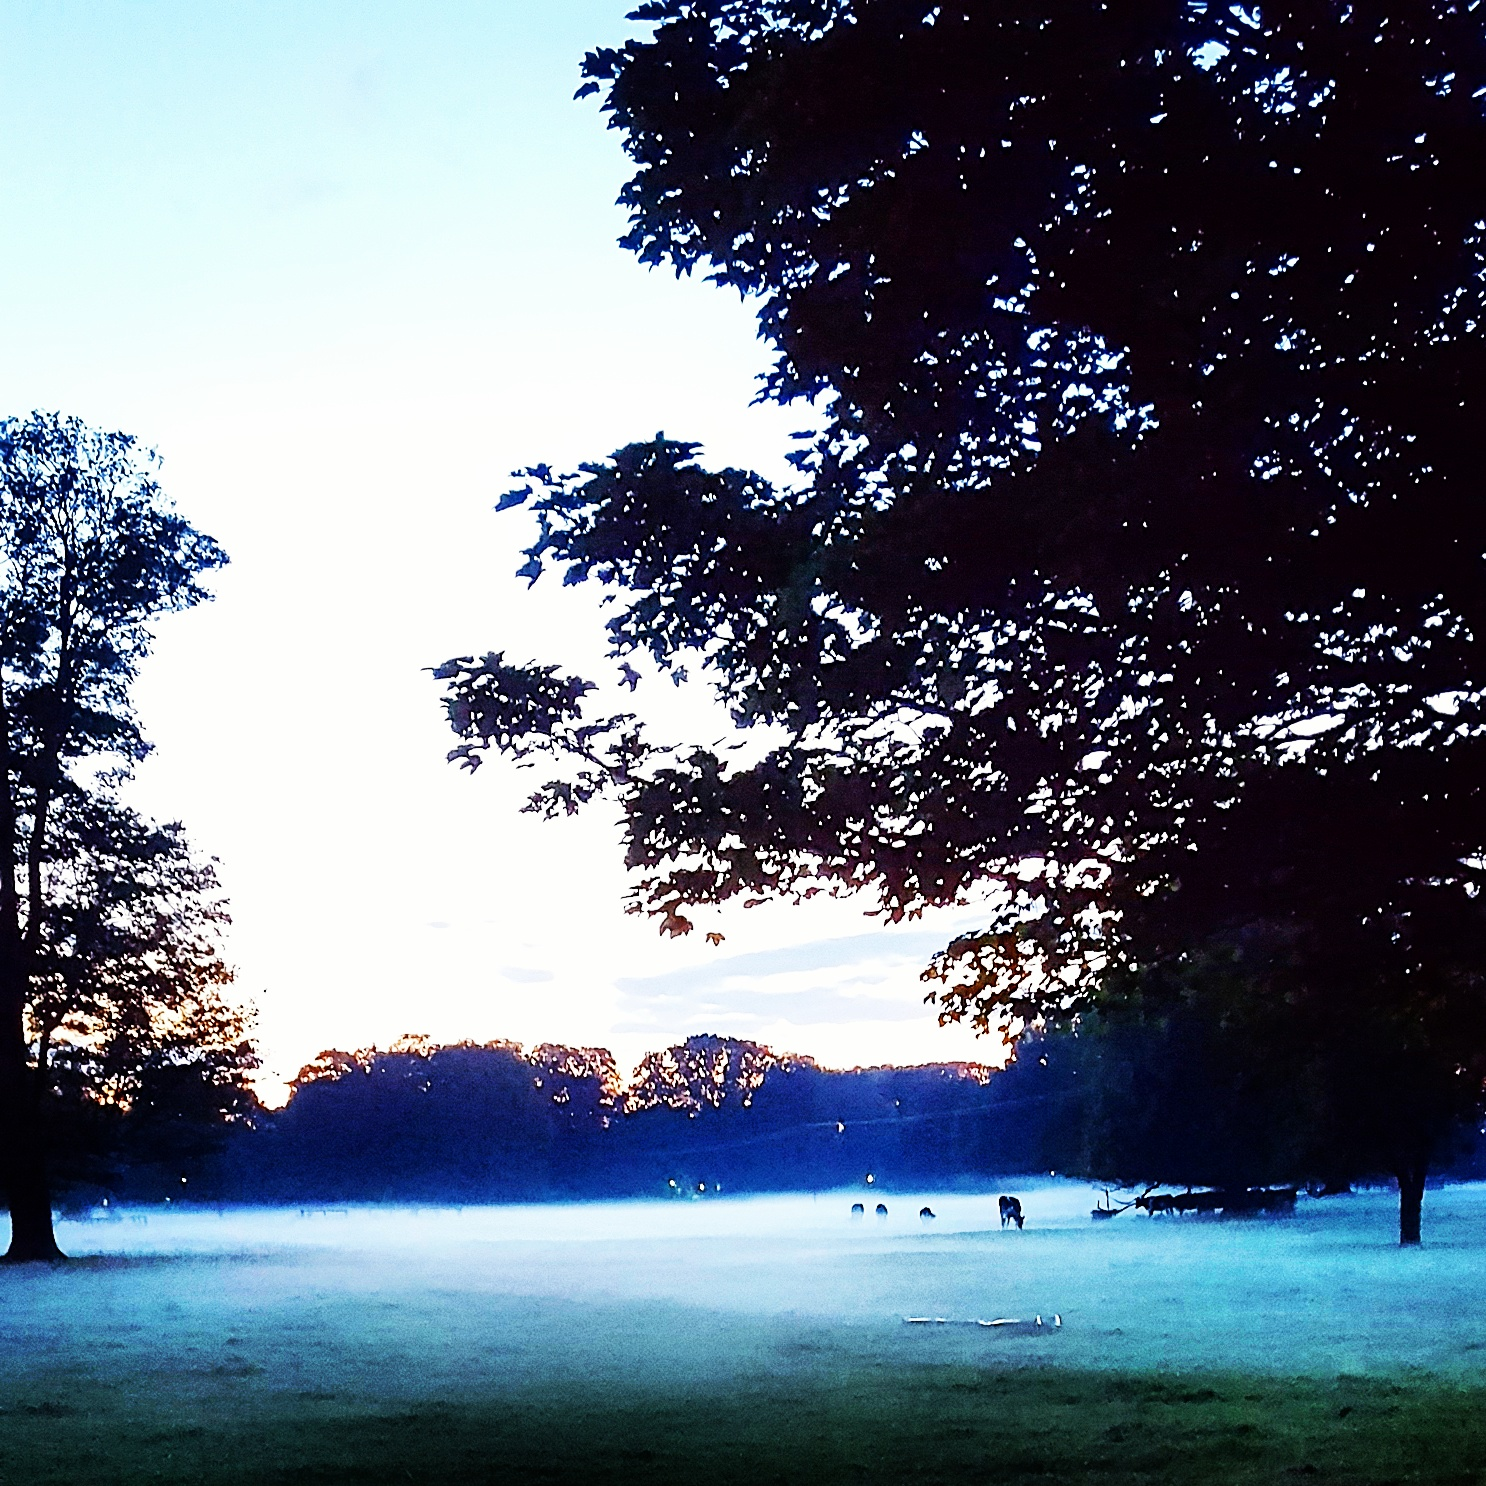 A ghostly mist one August evening near our home...